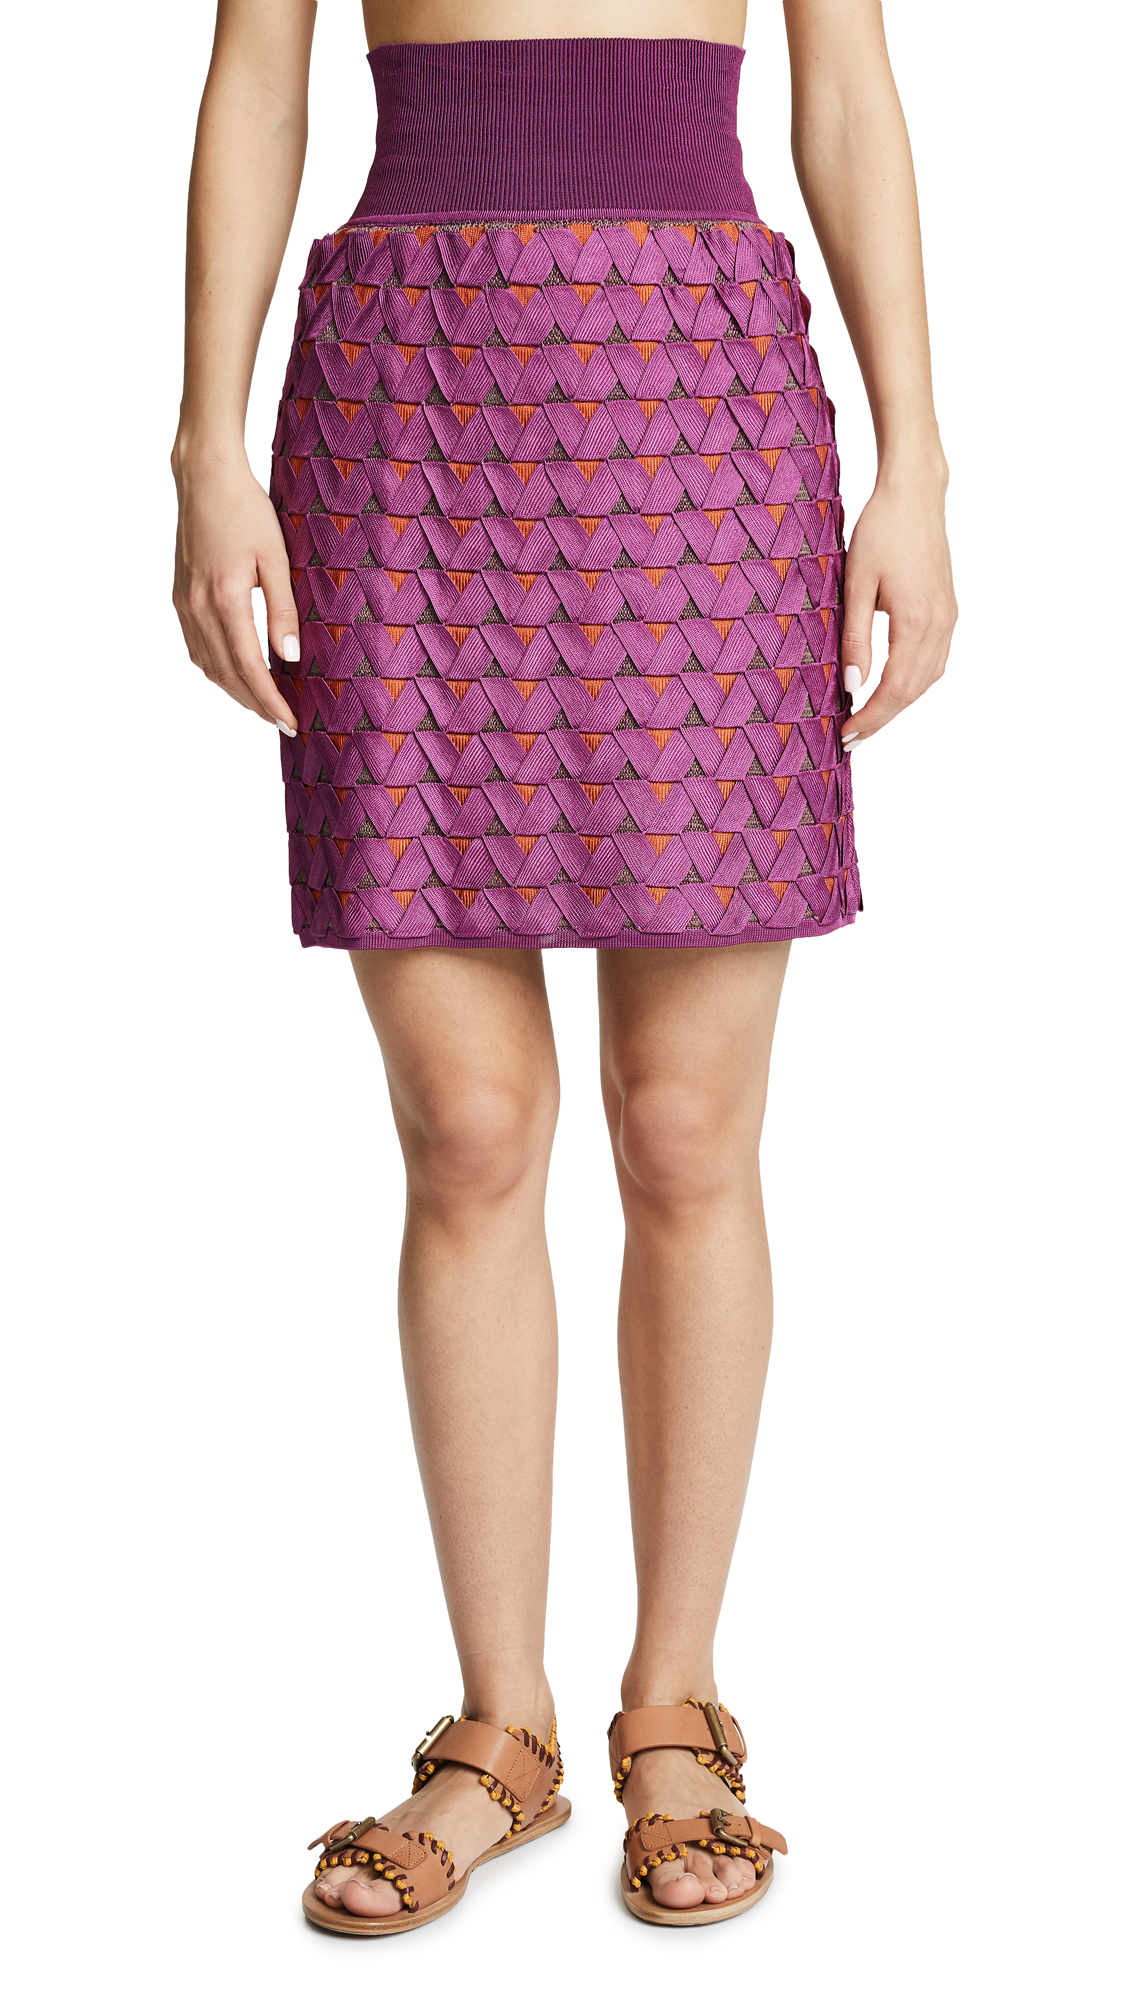 PEPA POMBO Lourdes Skirt in Taupe/Boysenberry/Zapote